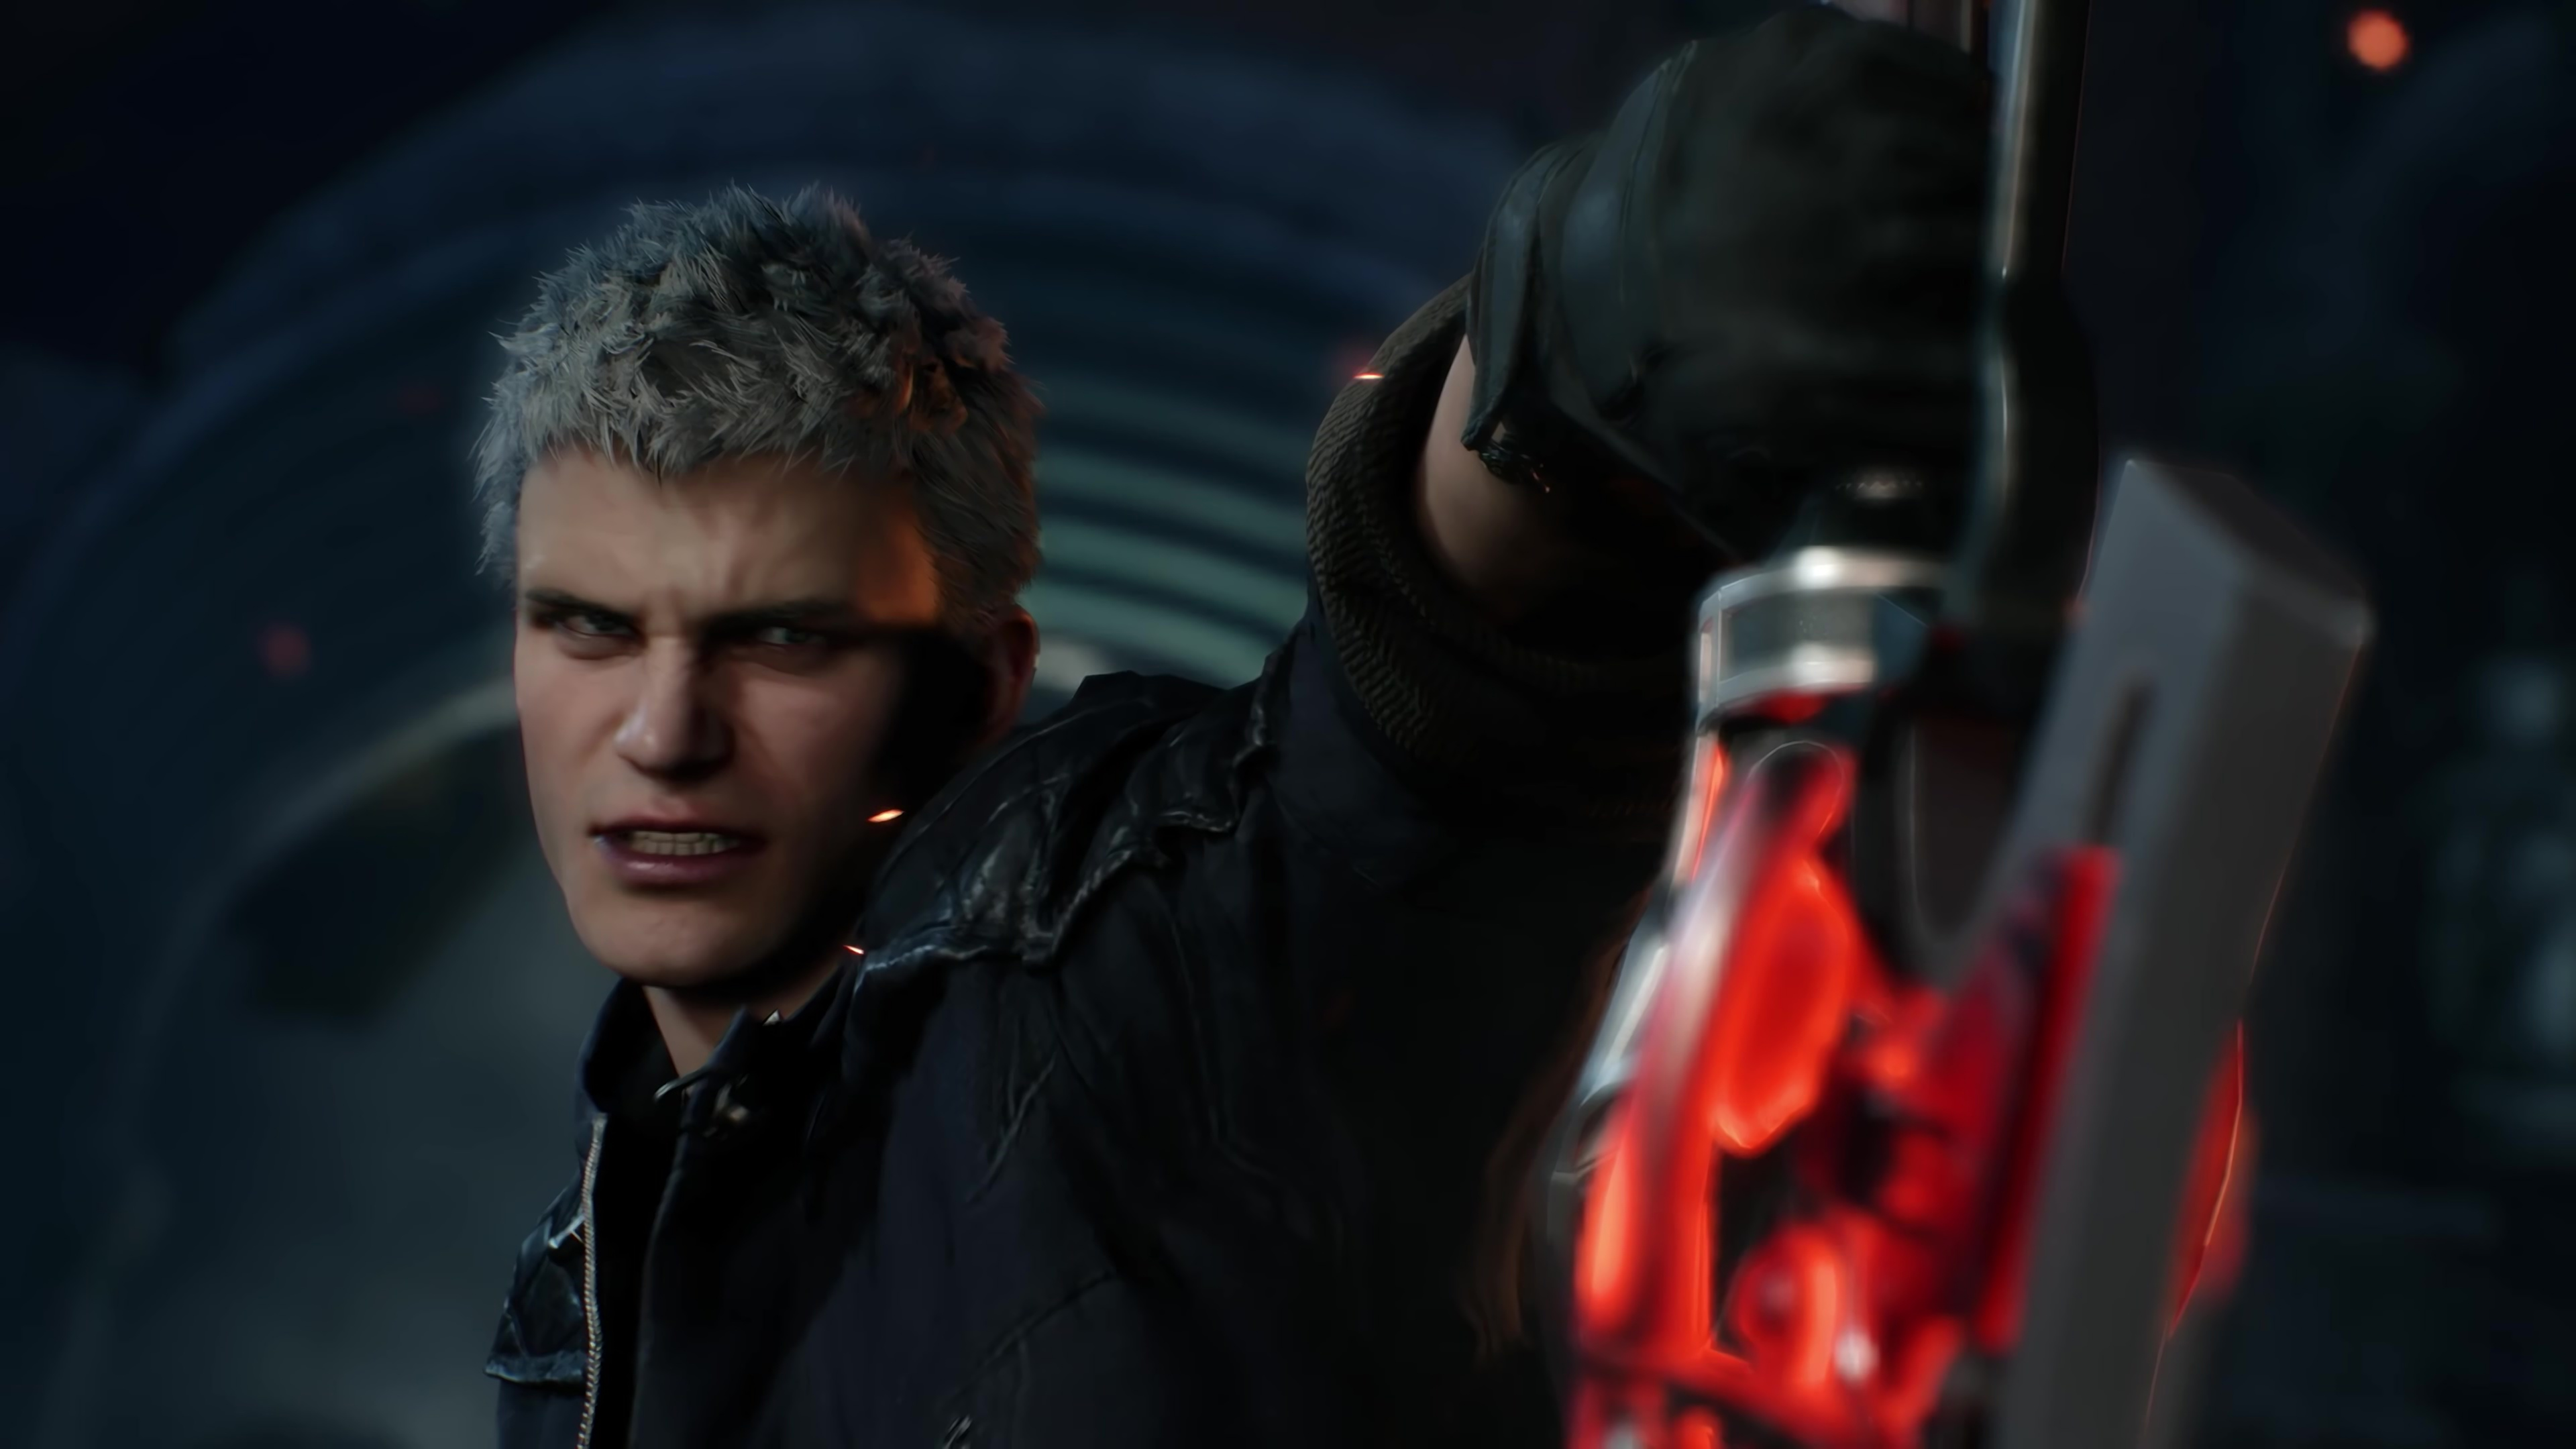 Devil May Cry 5 Nero 4k Ultra Hd Wallpaper Background Image